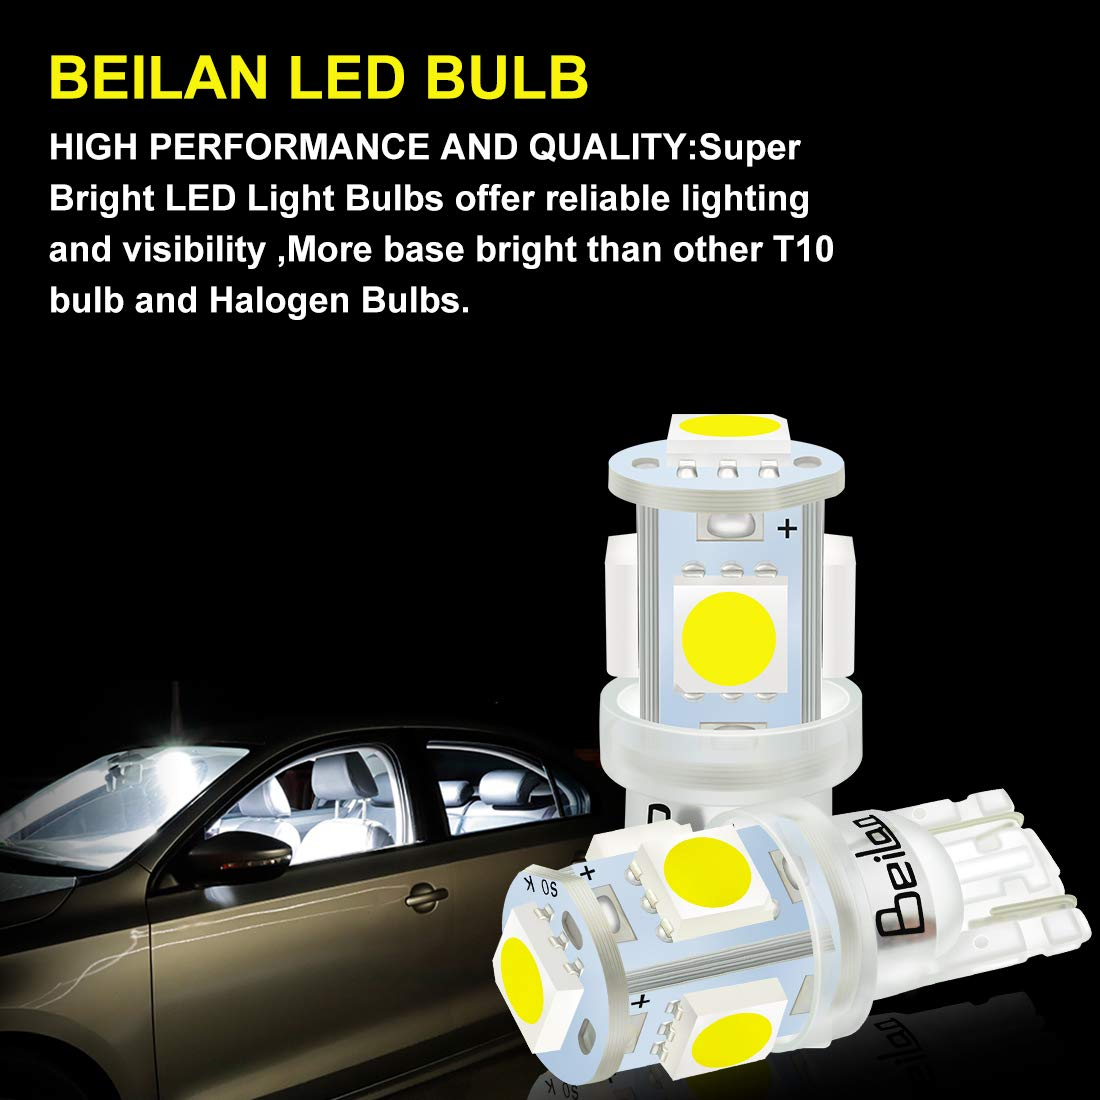 BeiLan 10Pcs T10 LED Car Bulbs Lamp 168 194 2825 501 W5W 5-SMD 5050 6000K LED Replacement 6000K Pure White for Car Reading Lamps License Plate Lights Lamps